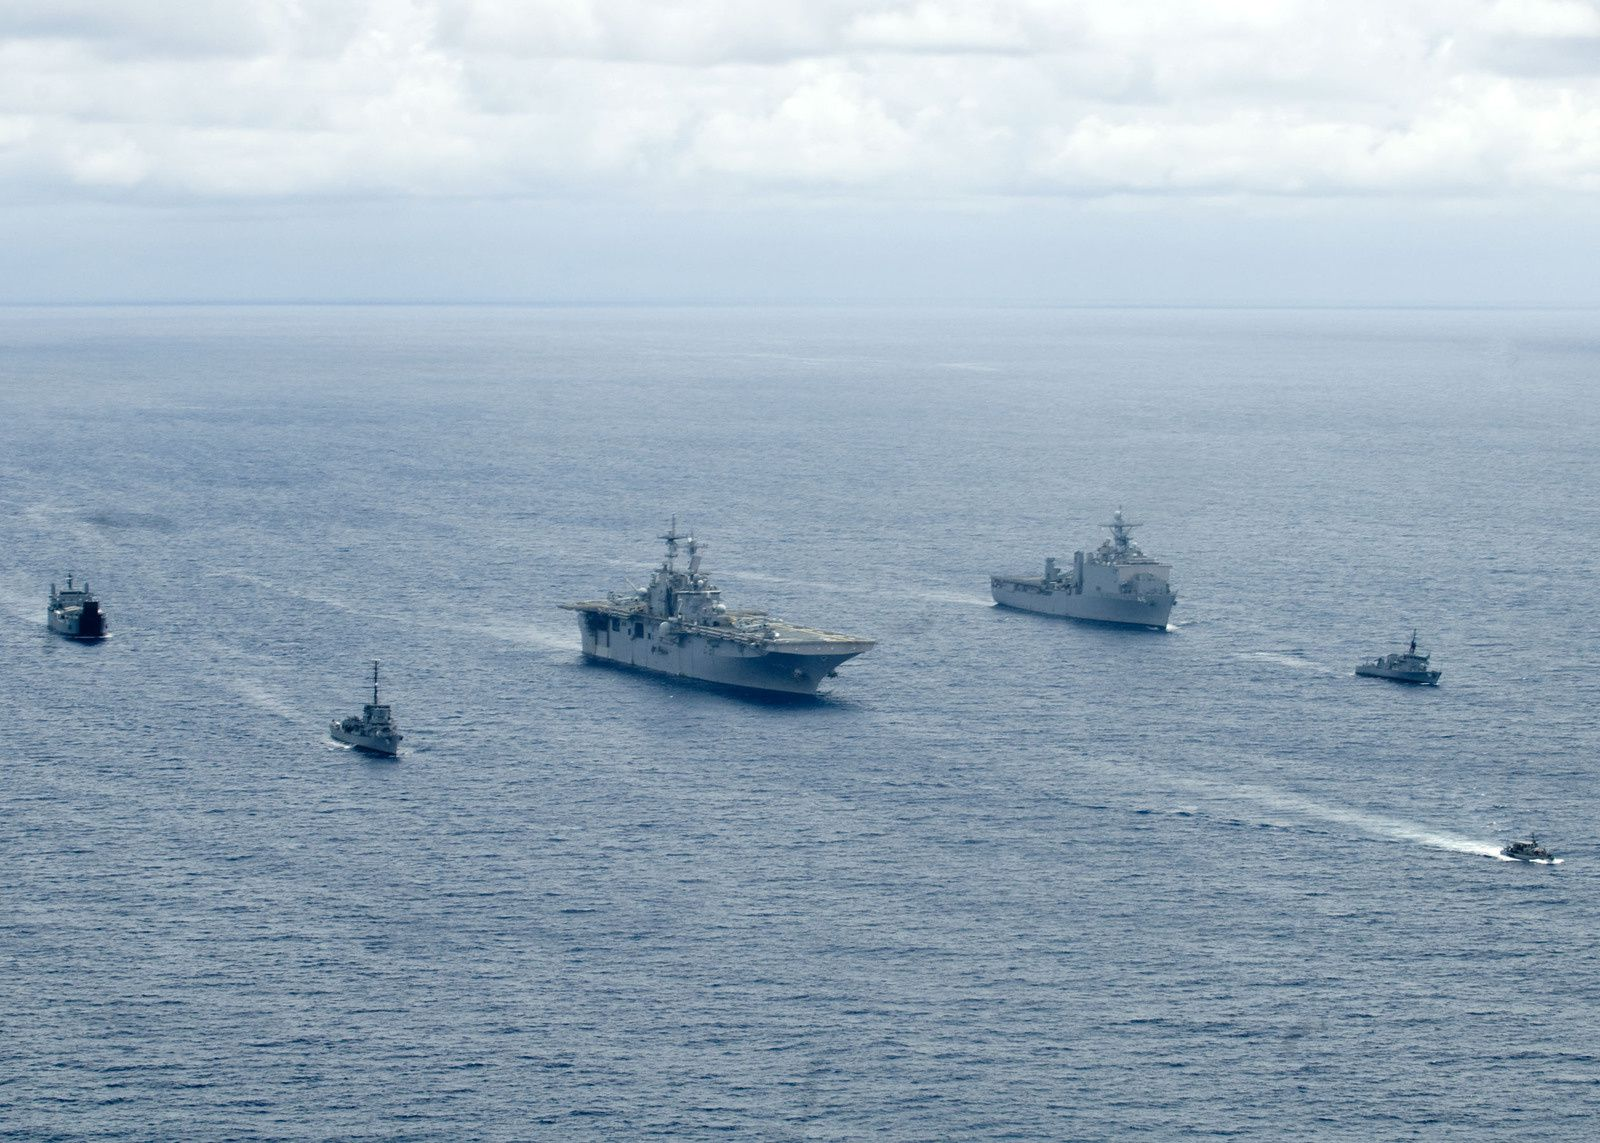 U.S. Navy and Armed Forces of the Philippines Navy ships are underway during exercise Balikatan 2009